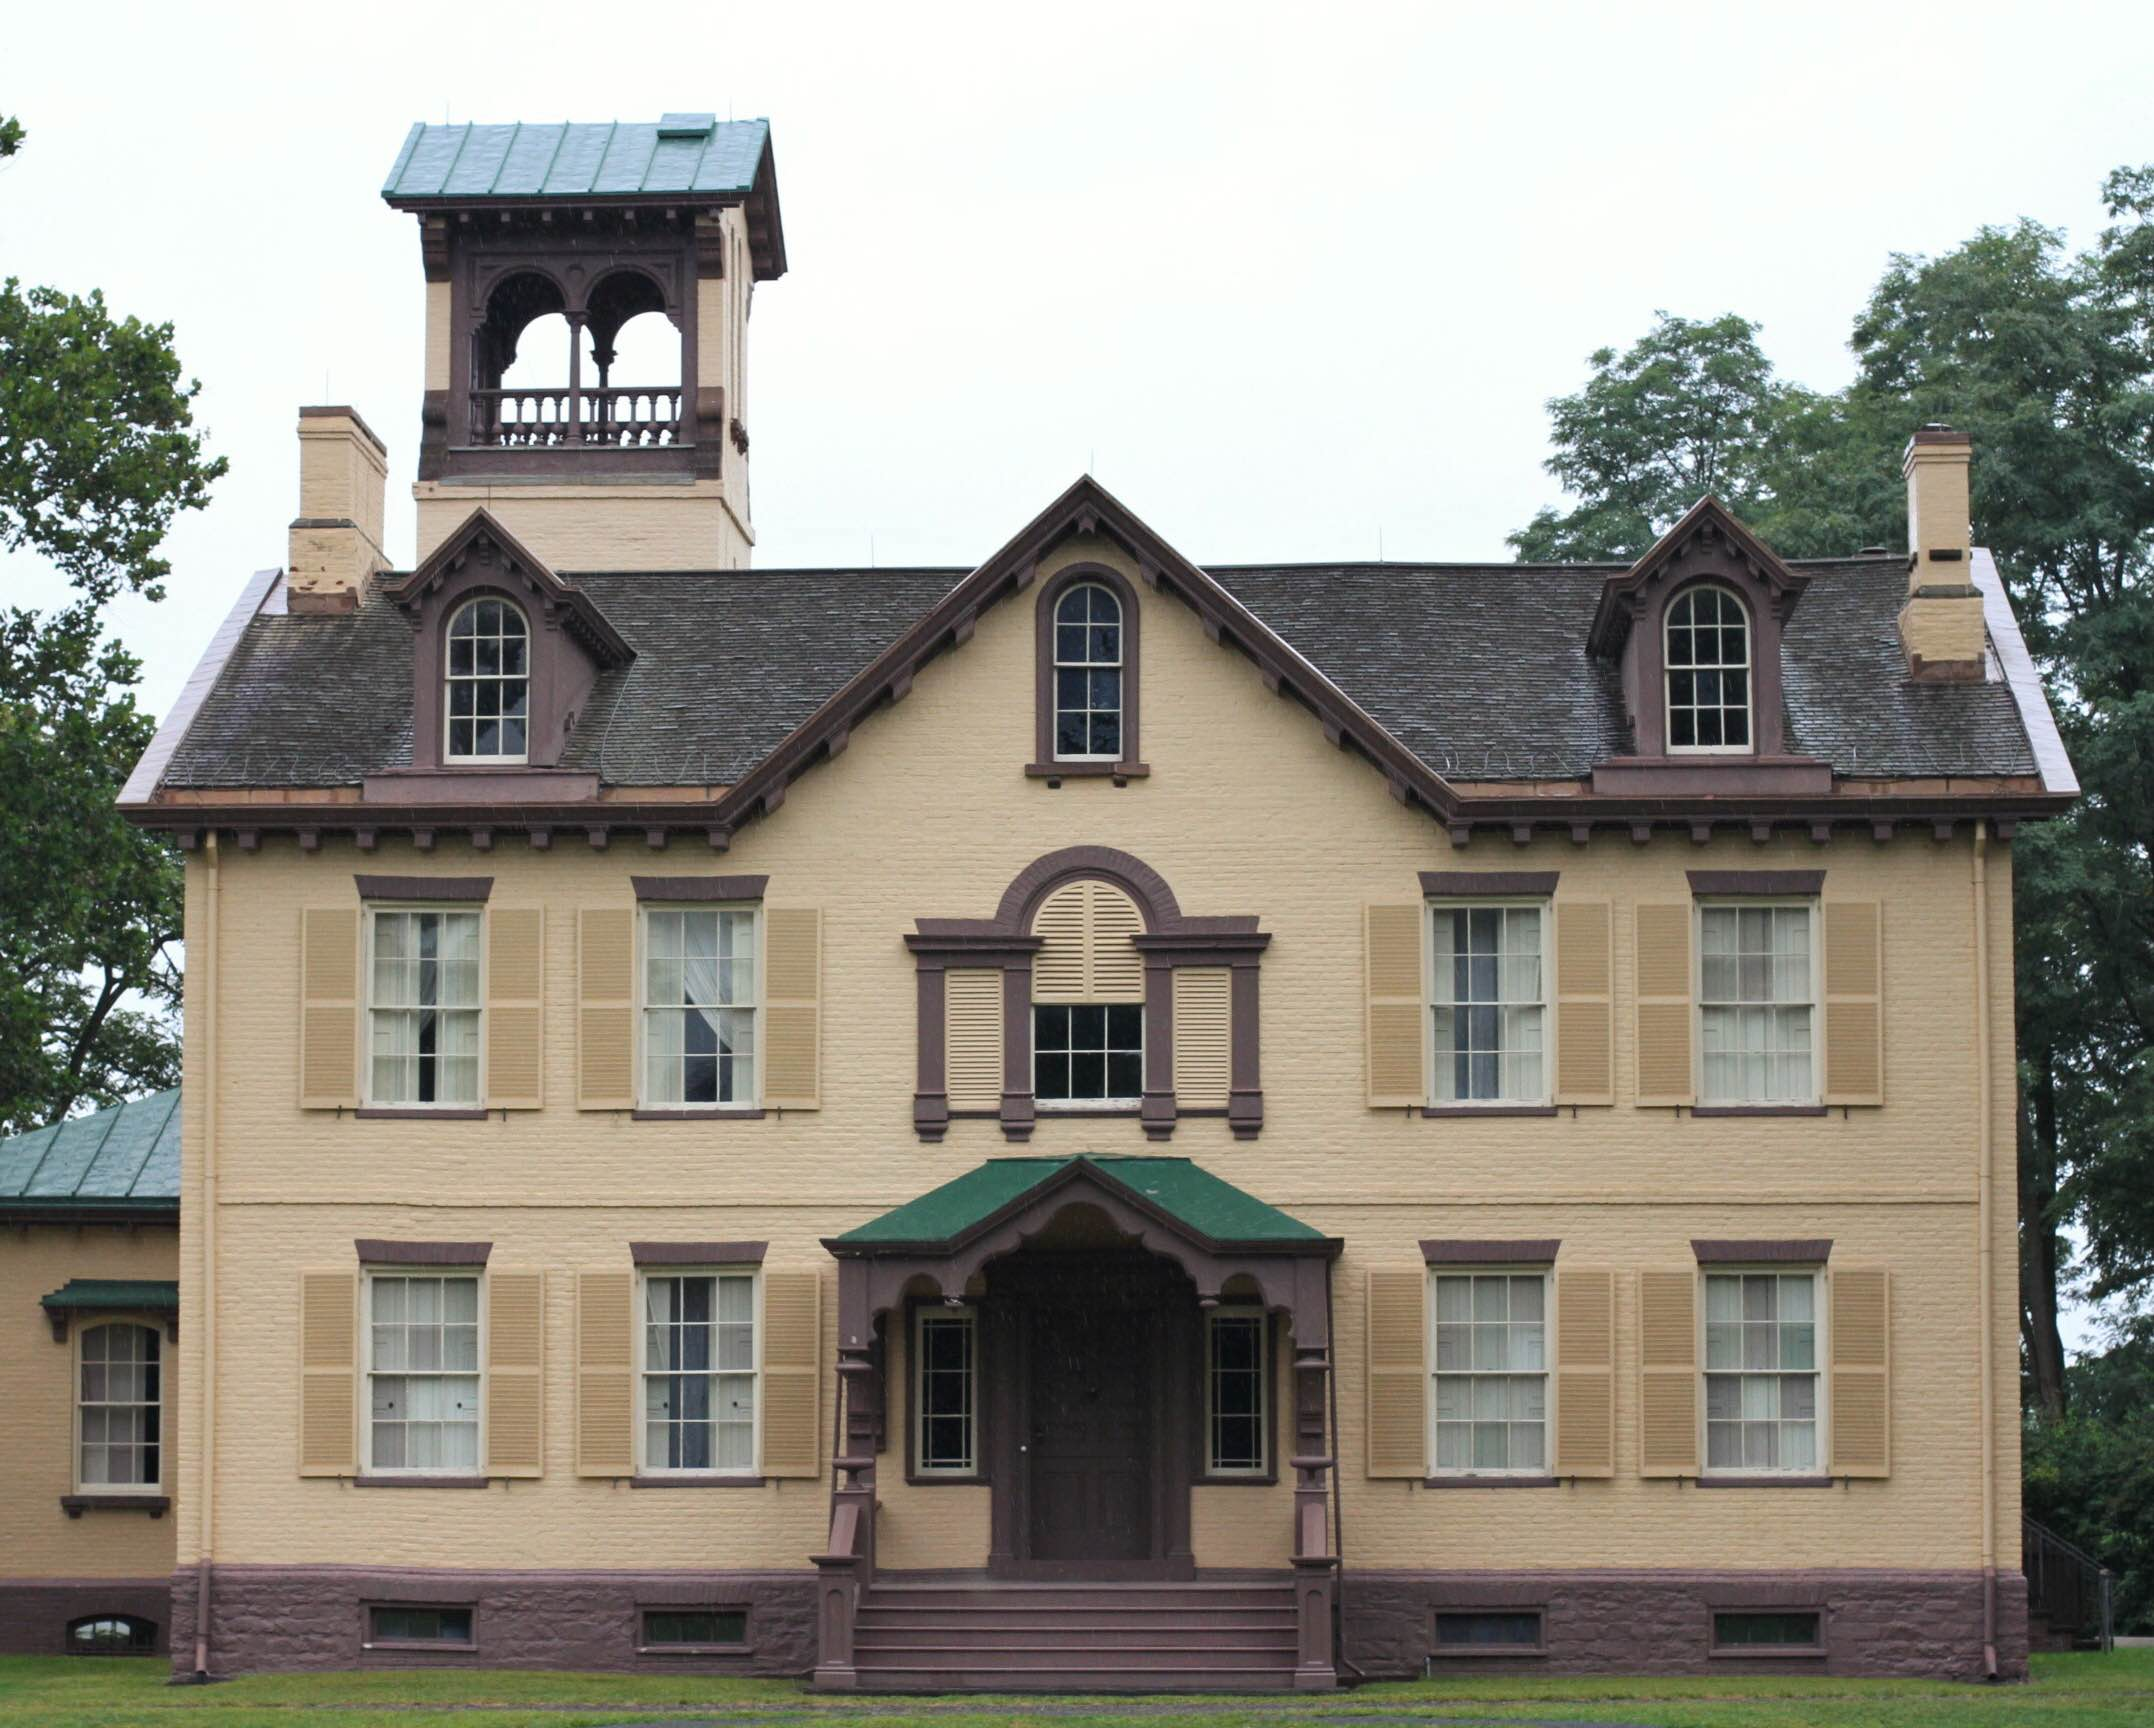 Lindenwald, a 36 room mansion purchased by Van Buren in 1839 during his term as President.